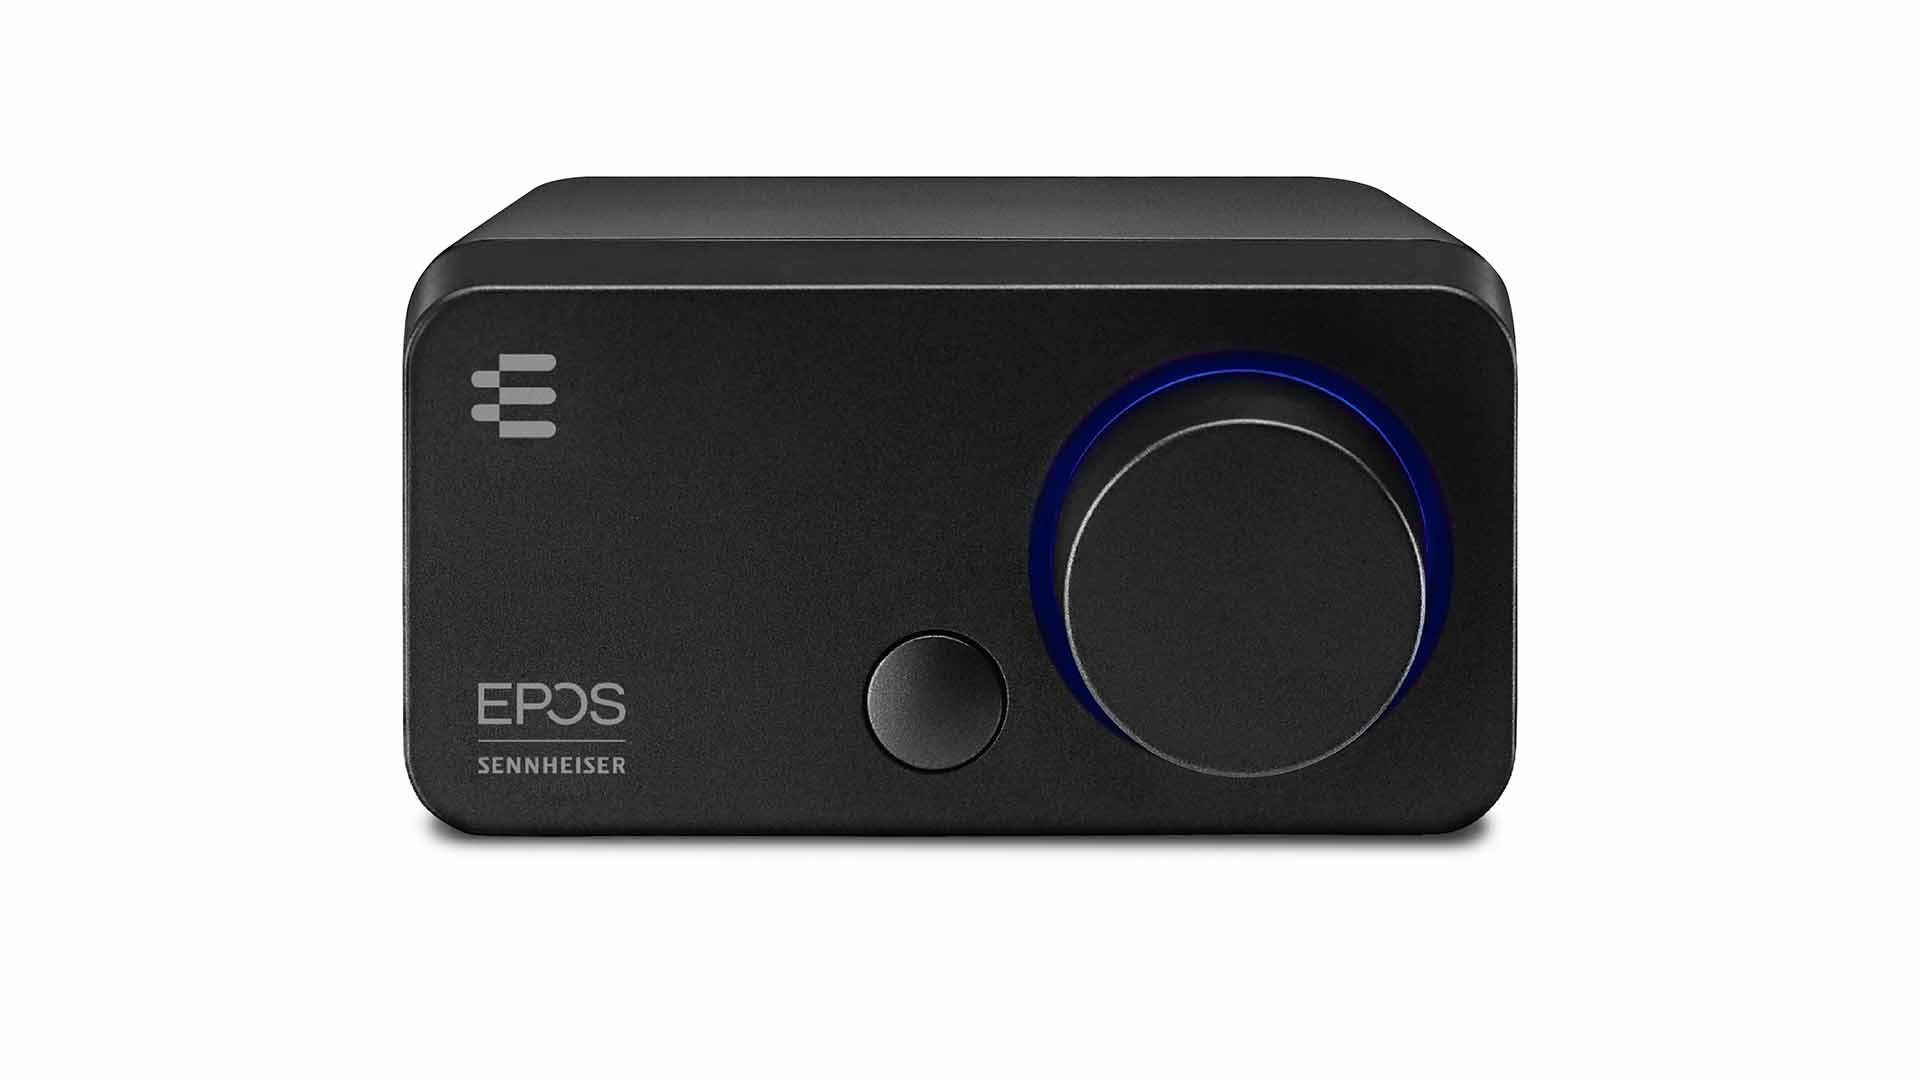 EPOS GSX 300 External Sound Card review — Big gaming audio in a small package